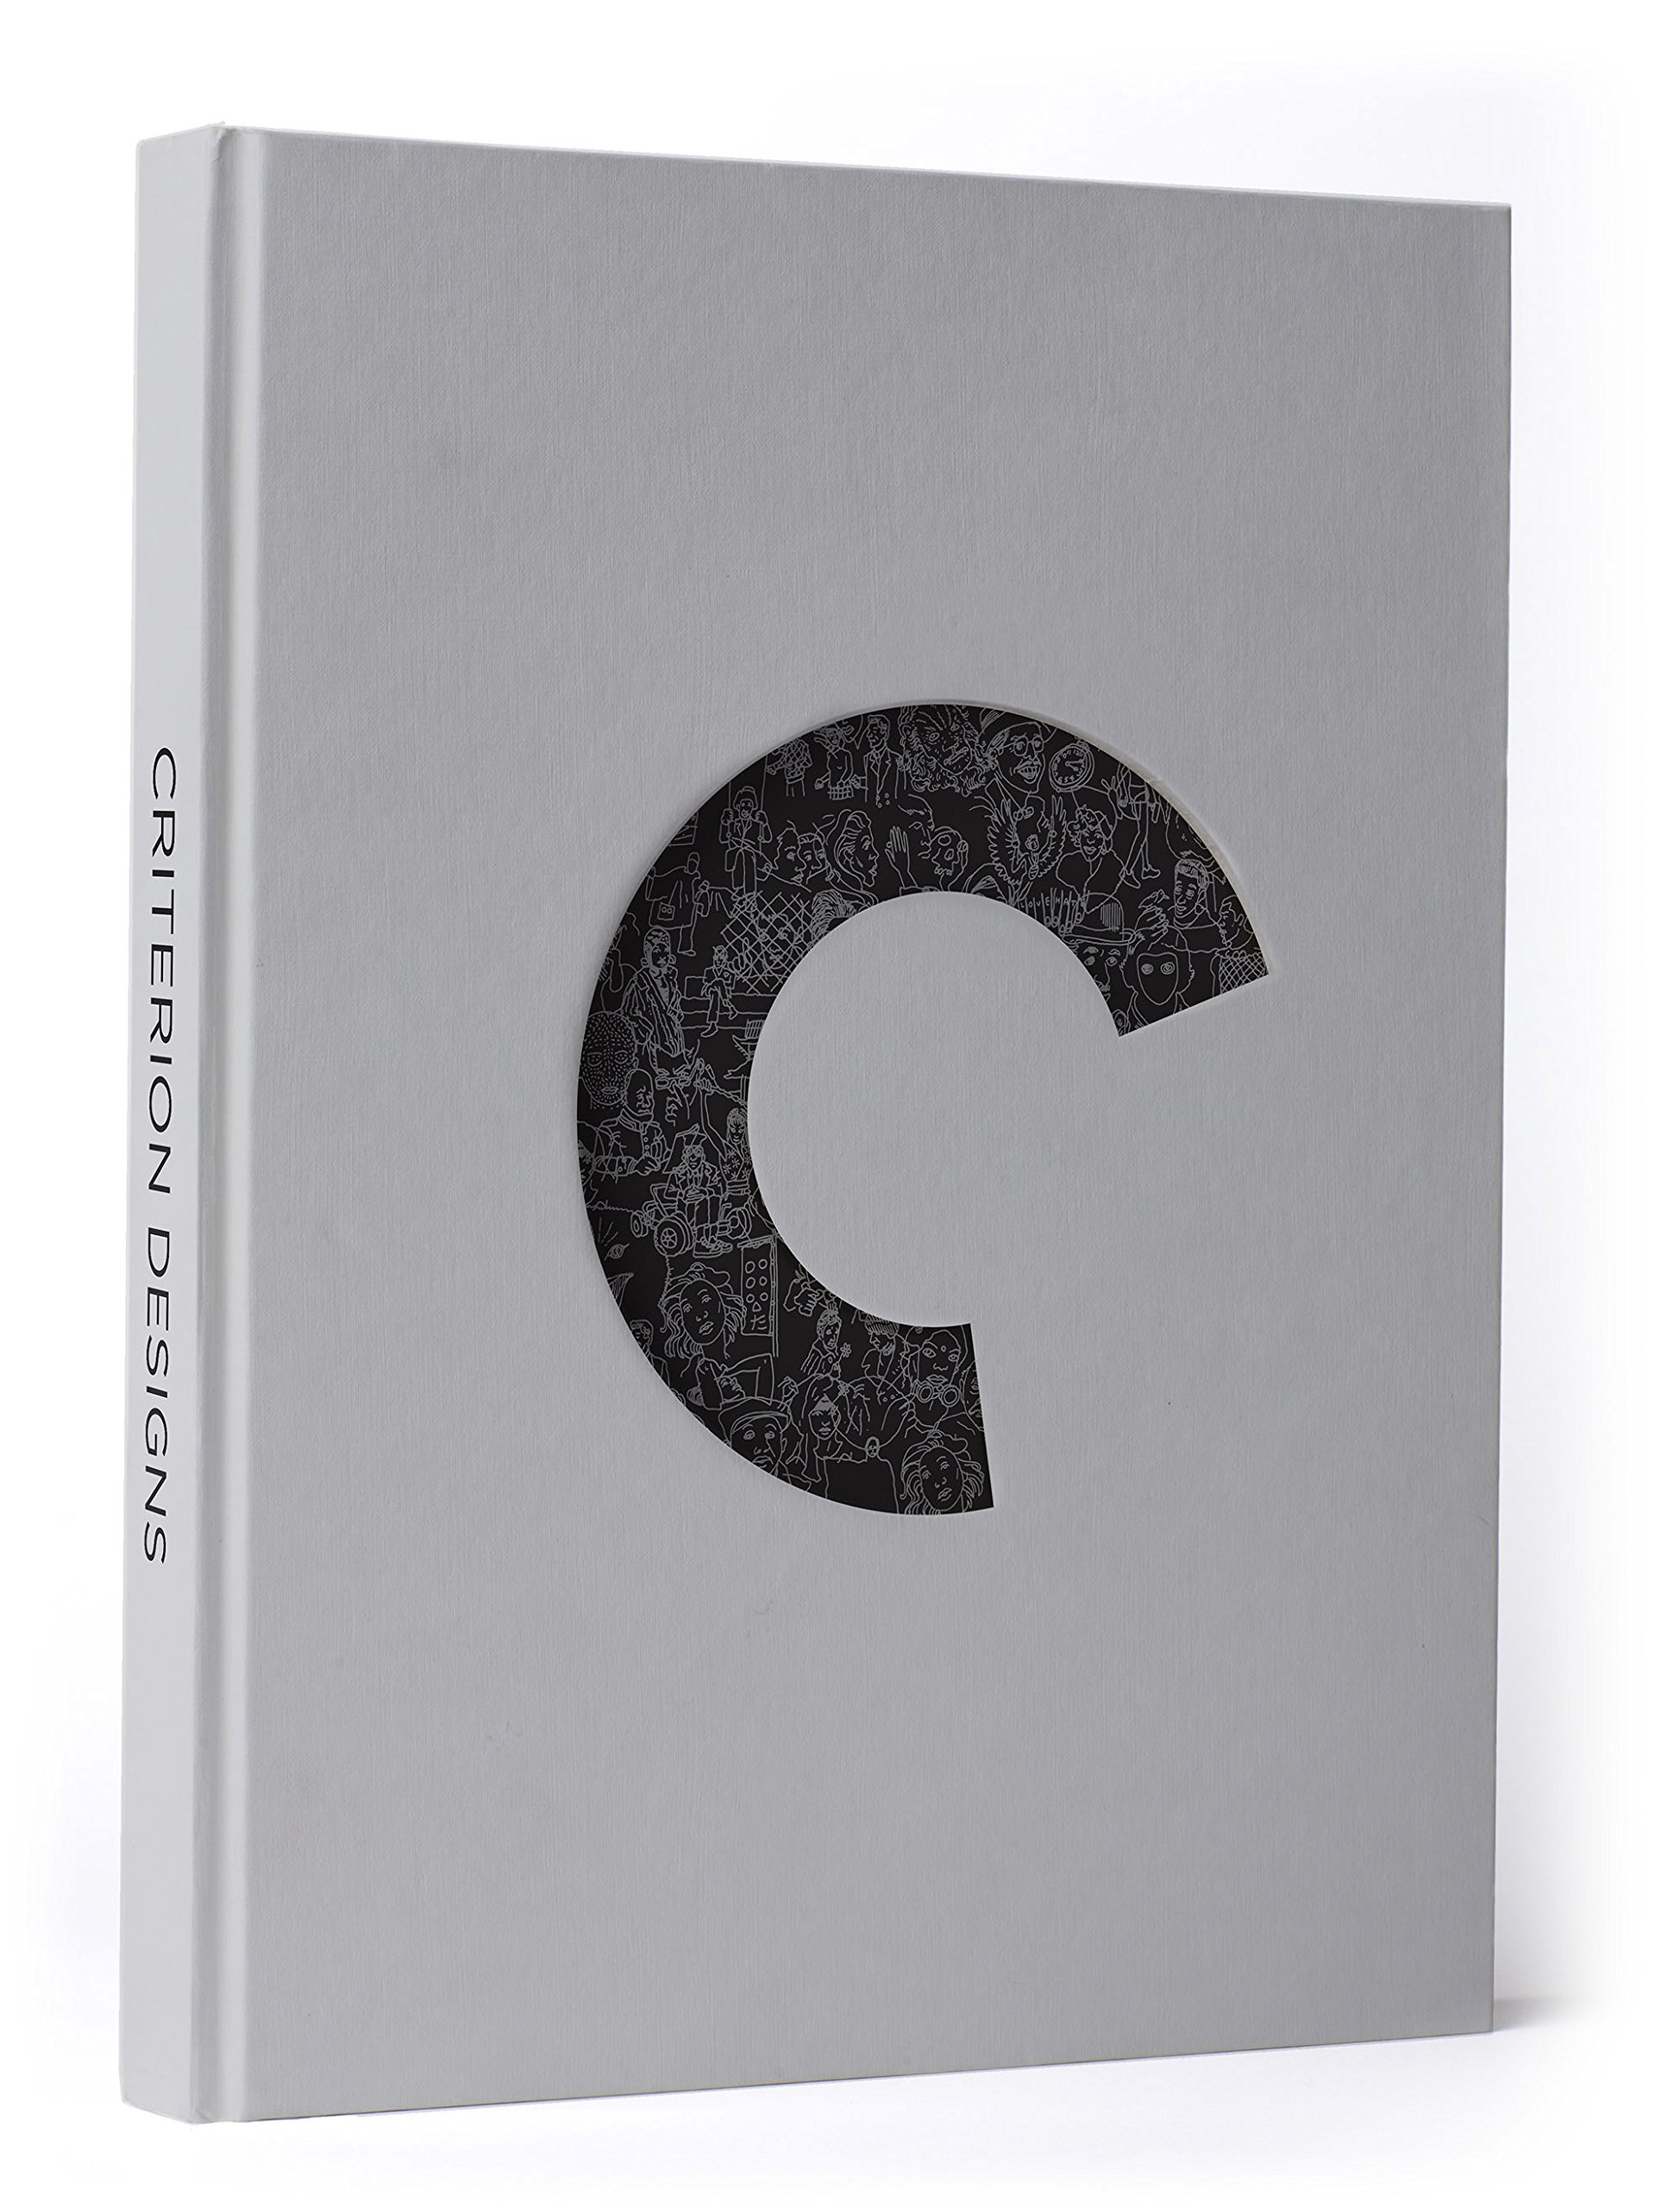 Criterion Designs The Criterion Collection Various 0715515134712